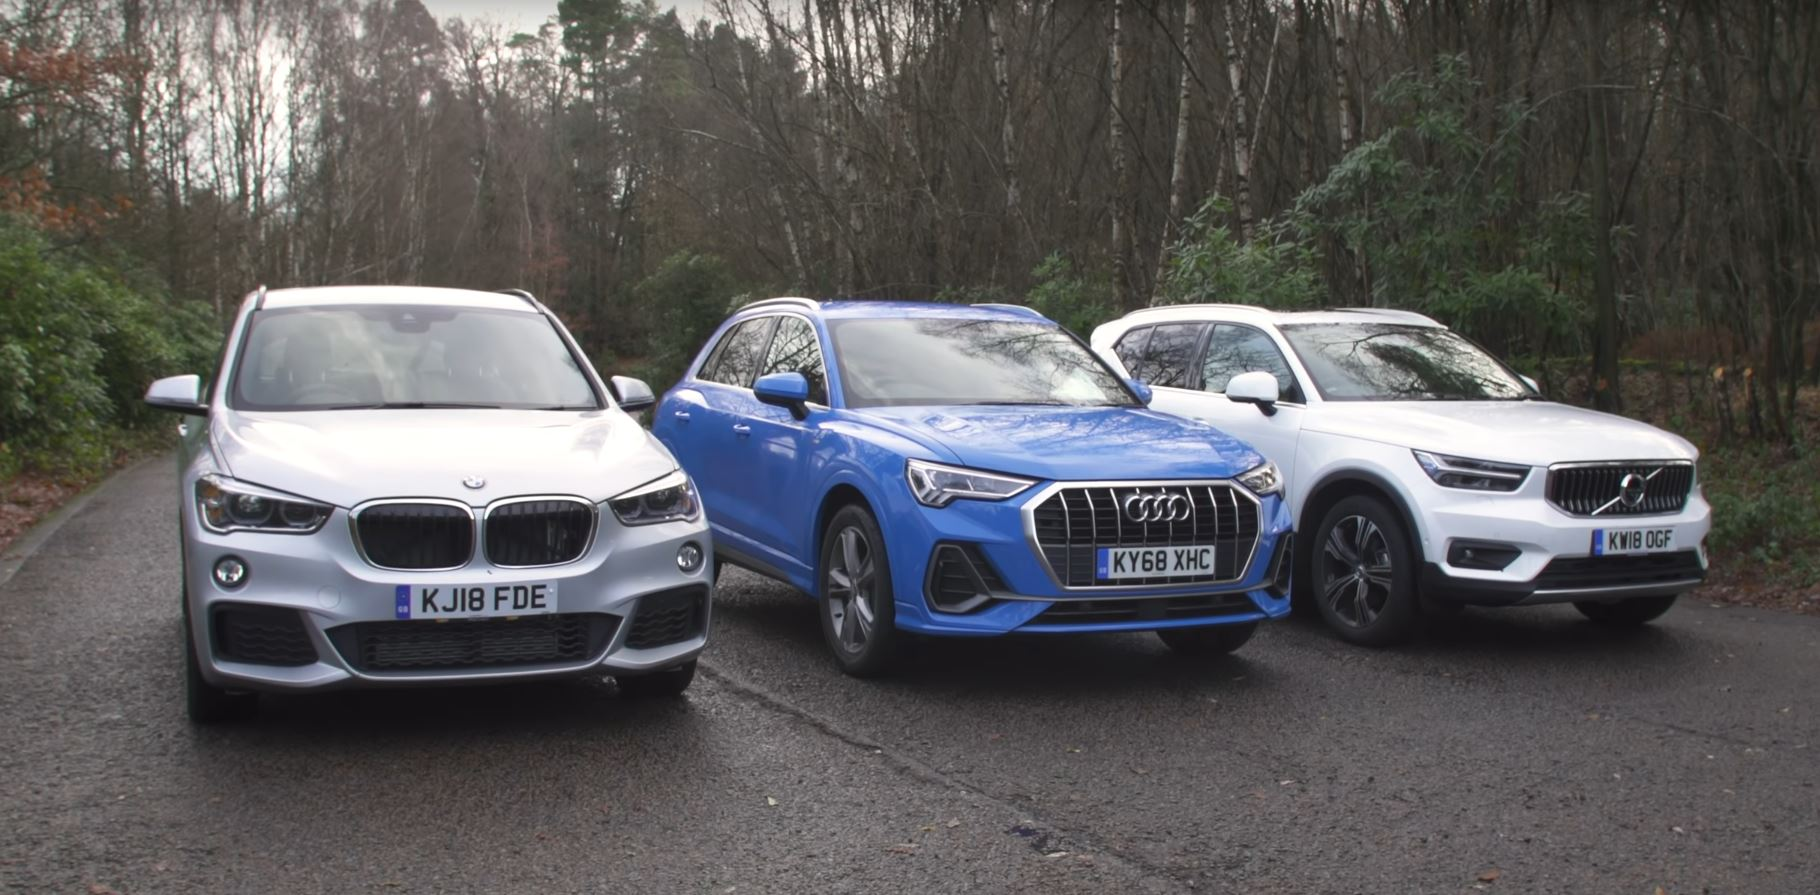 New Audi Q3 Tested Against Bmw X1 And Volvo Xc40 With Surprising